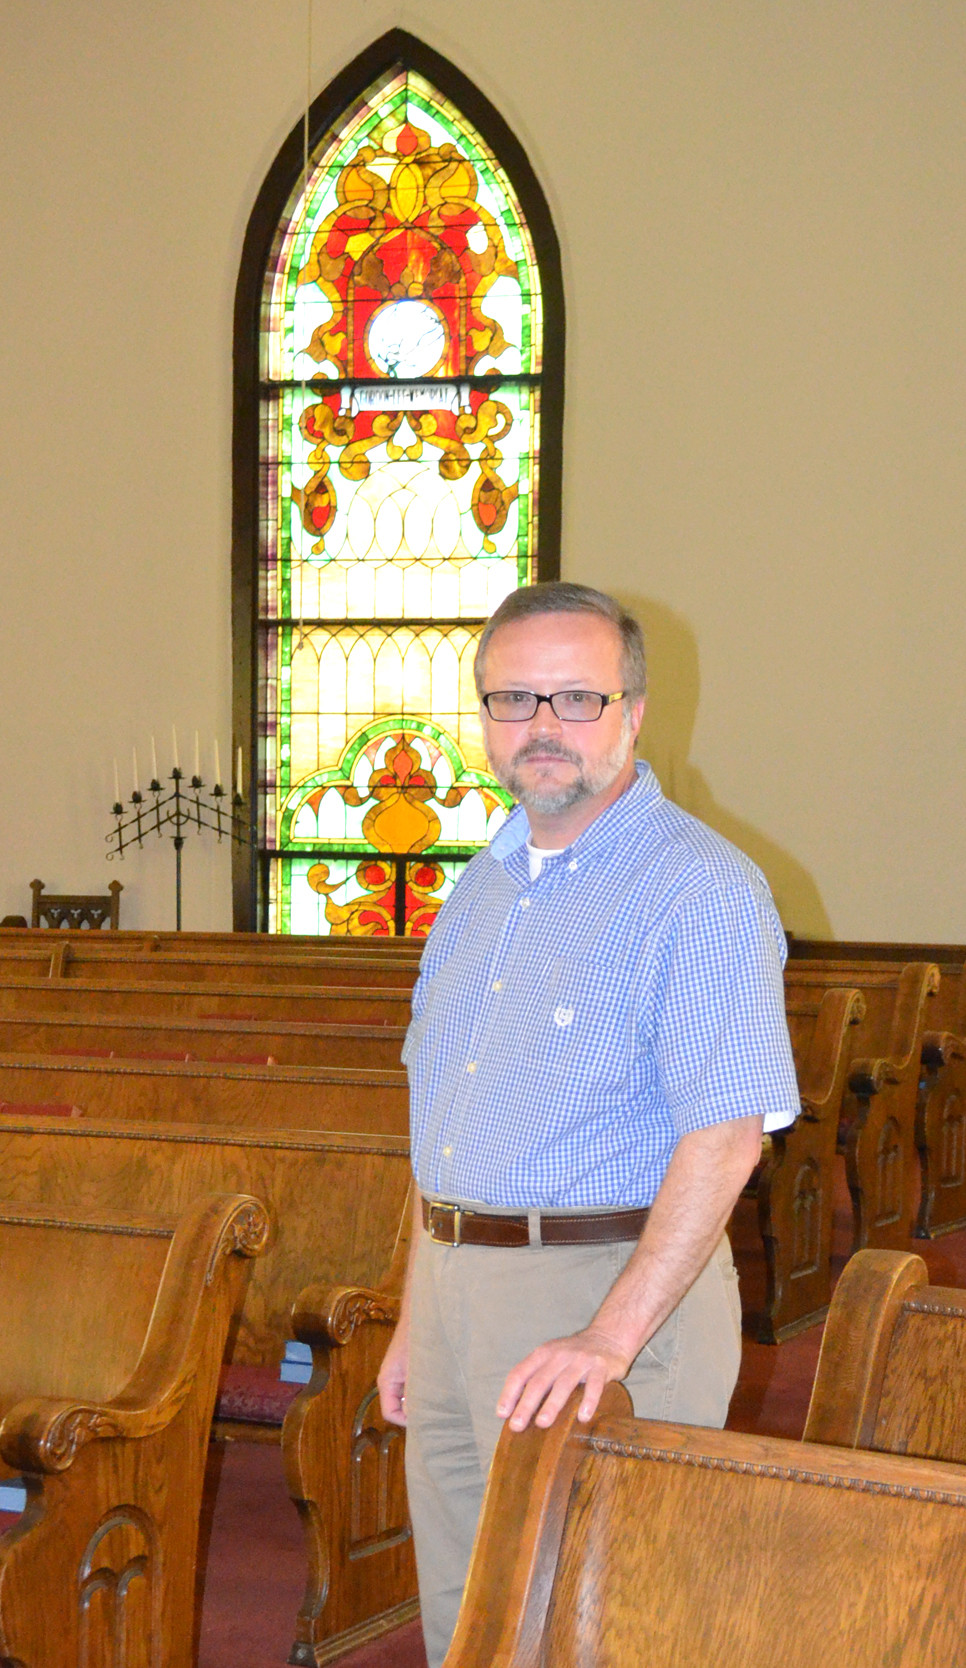 THE REV. JERRY L. UTT II officially began his duties as pastor at Troy Presbyterian Church March 1. His installation service is this Saturday, June 8, beginning at 4 p.m. at Troy Presbyterian Church, 11021 Troy Pike. (Photo by Bob Vlach)